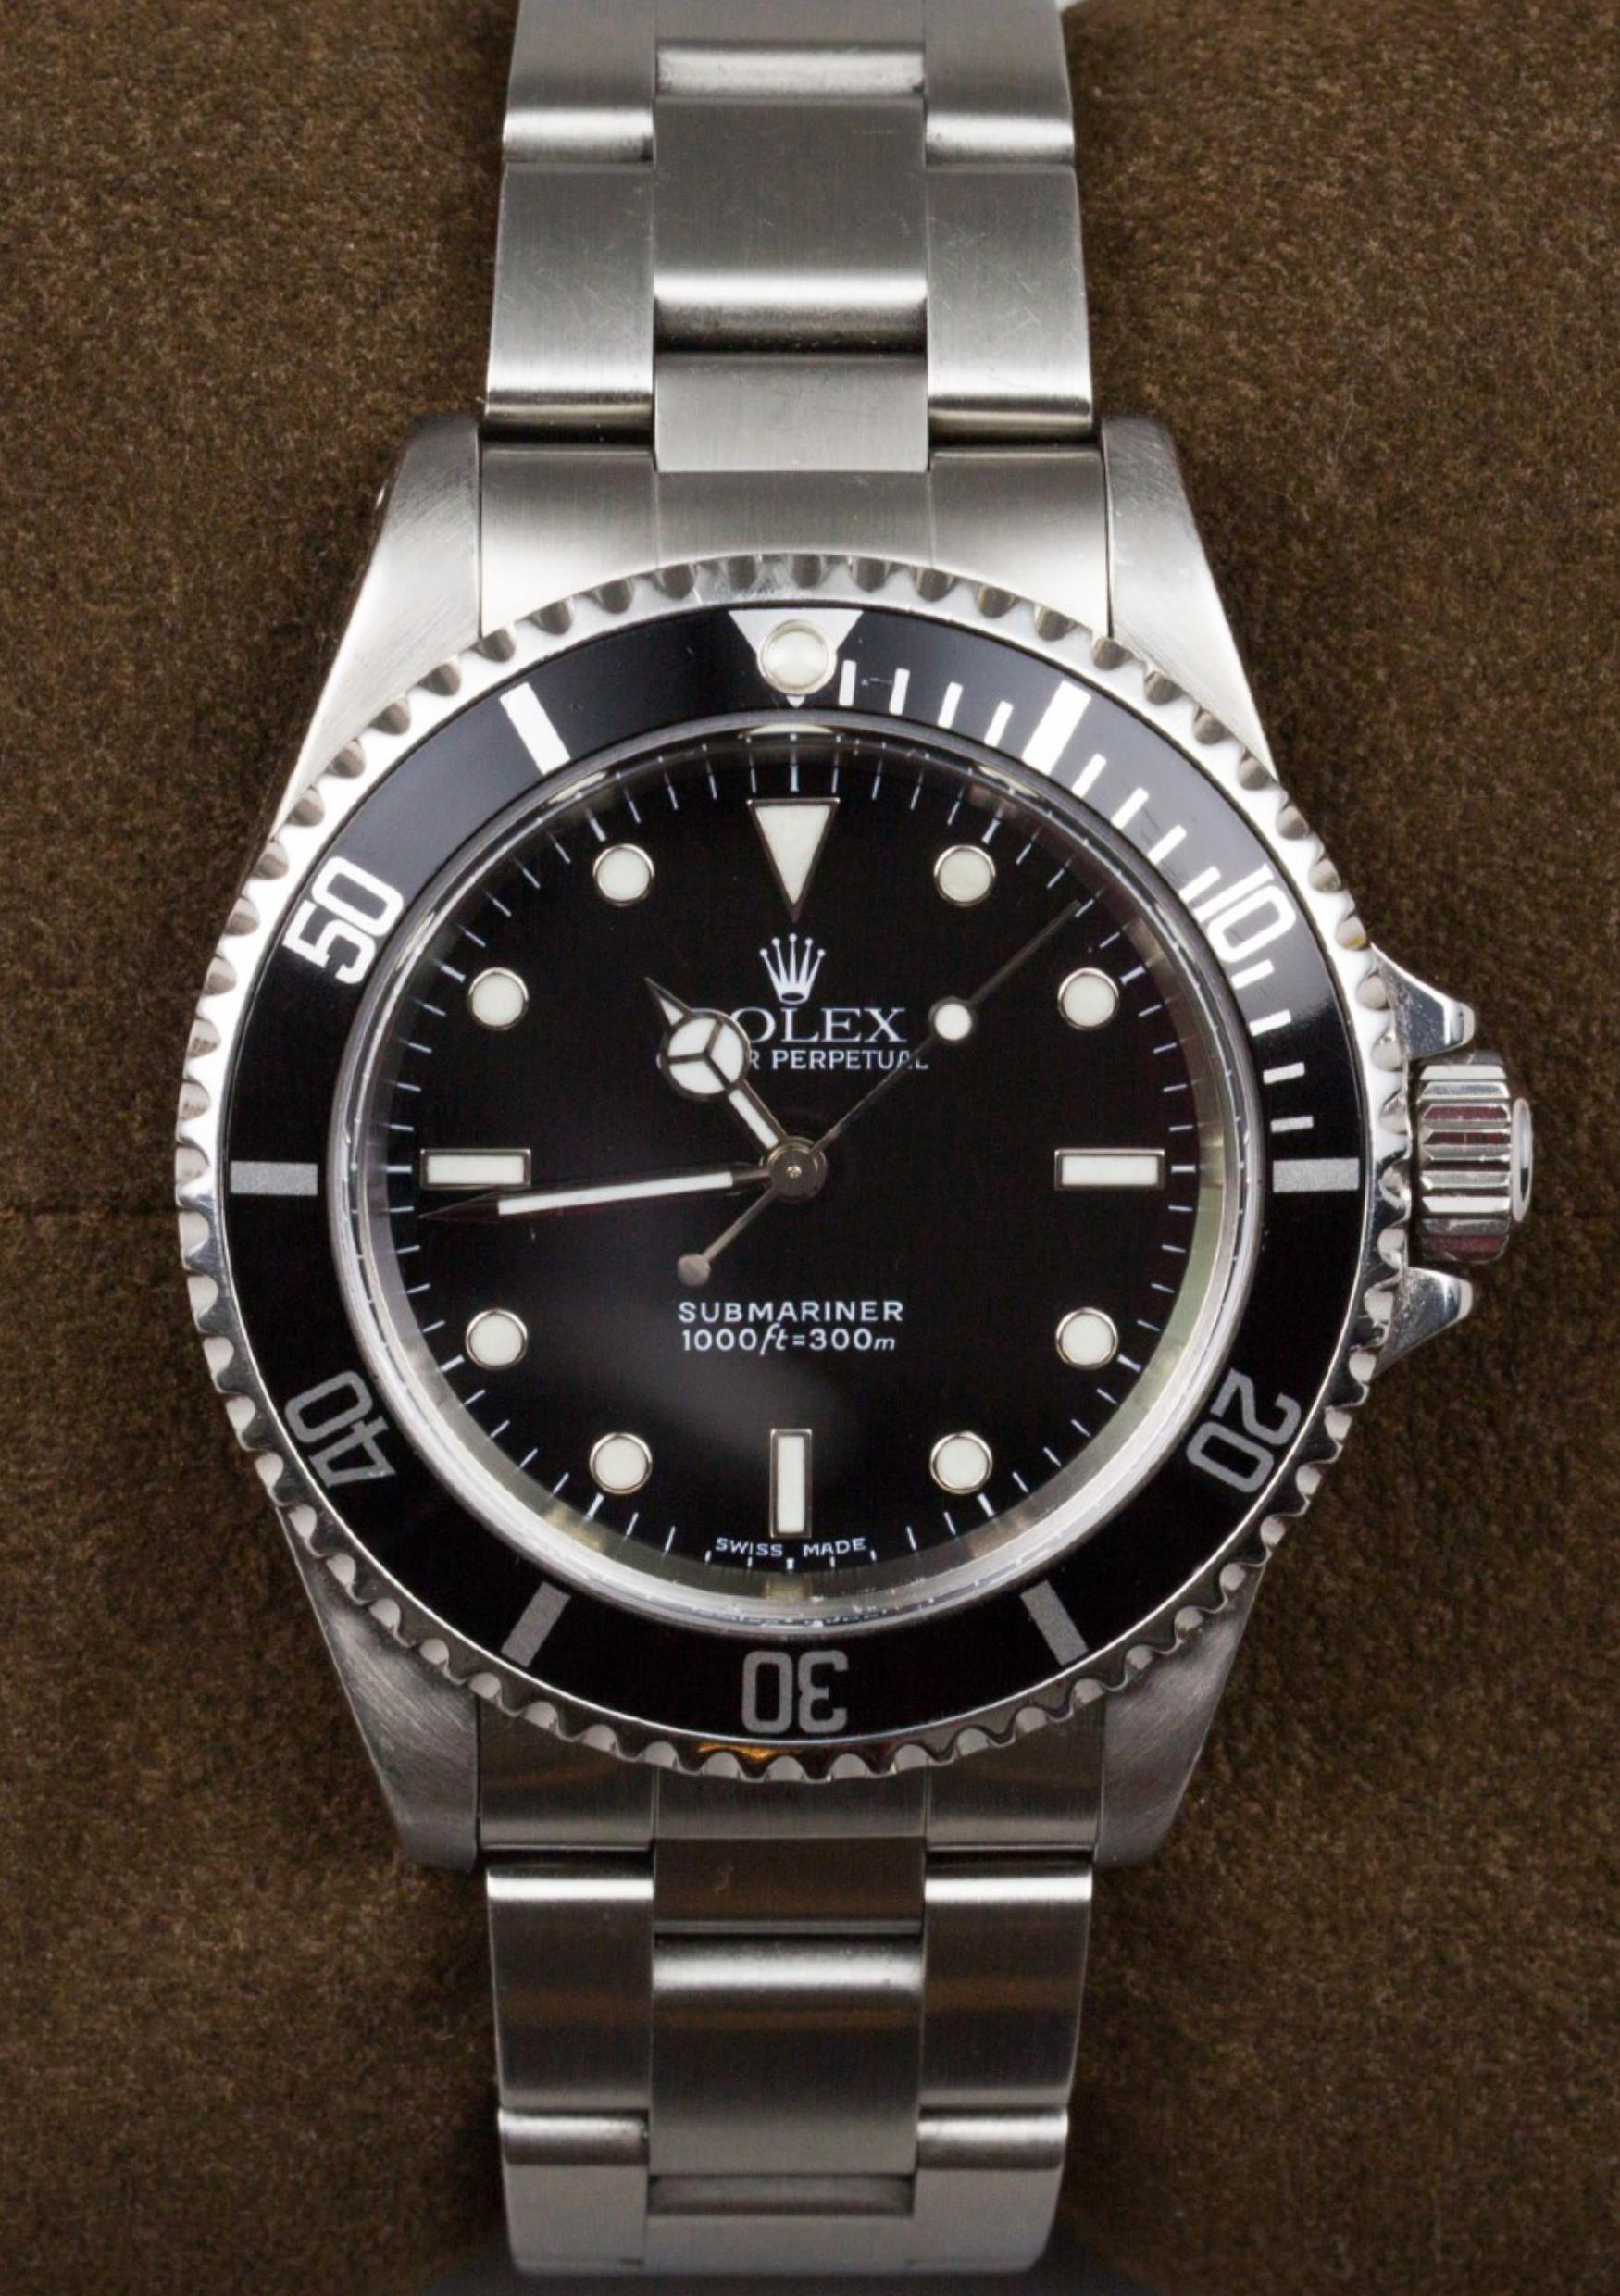 Lot 31 - ROLEX, Rolex Submariner